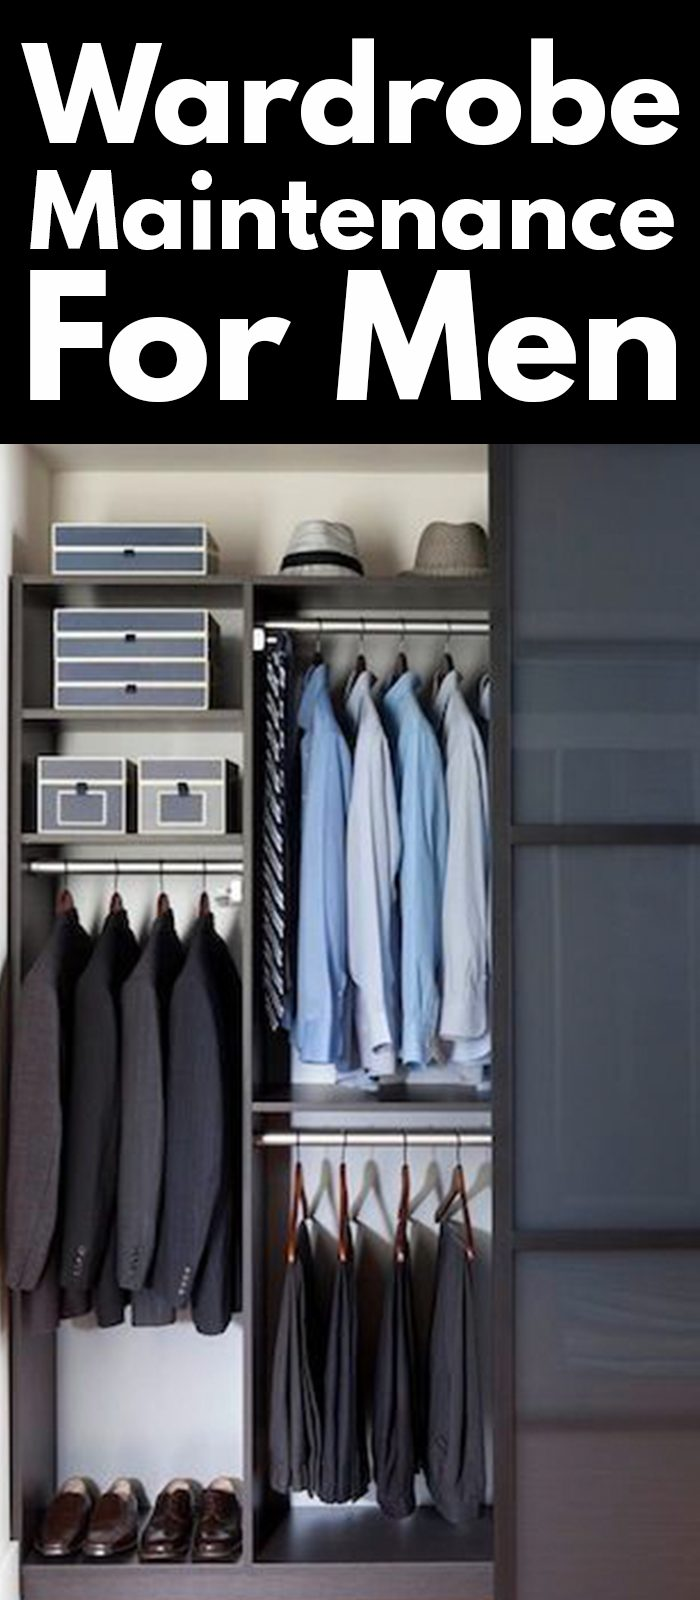 WARDROBE MAINTENANCE FOR MEN